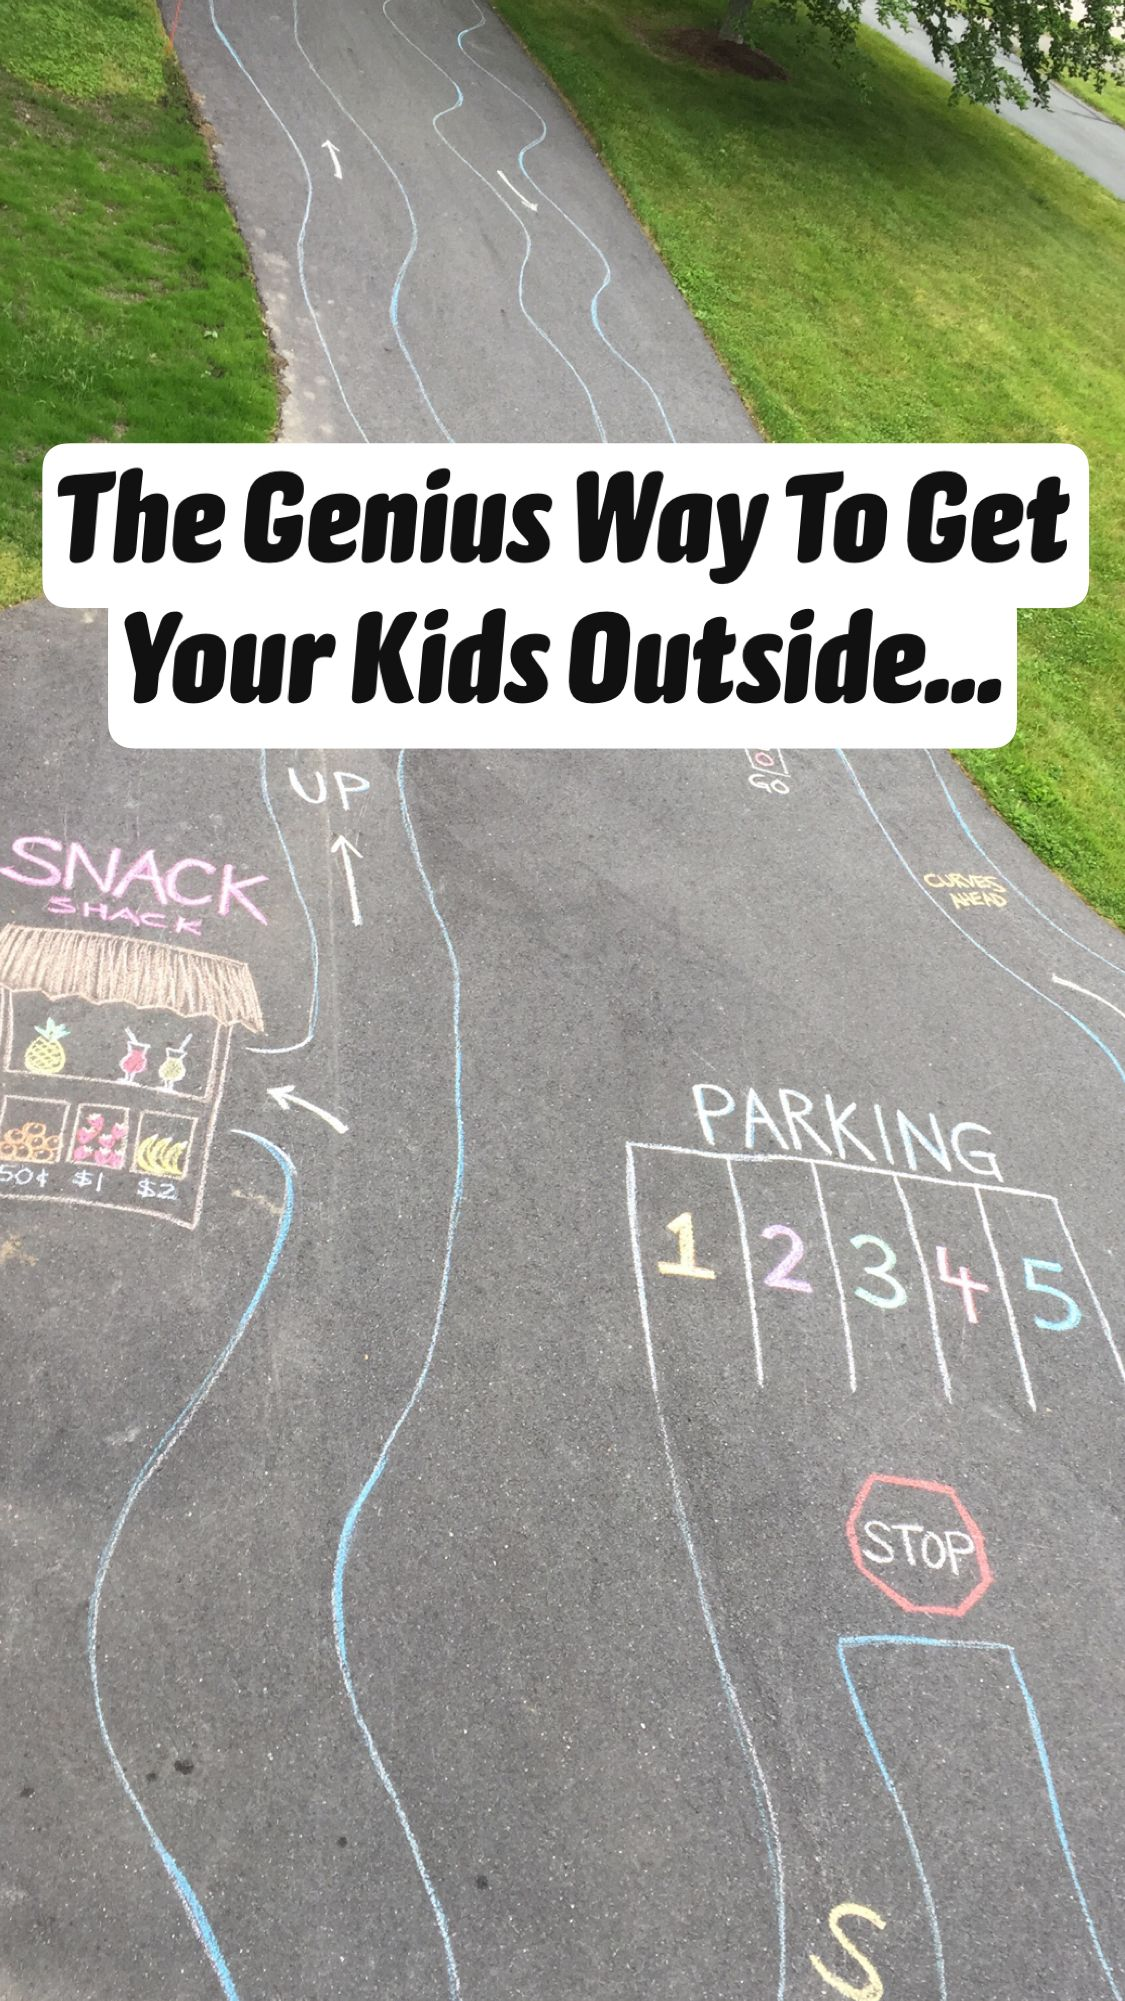 The Genius Way To Get Your Kids Outside...